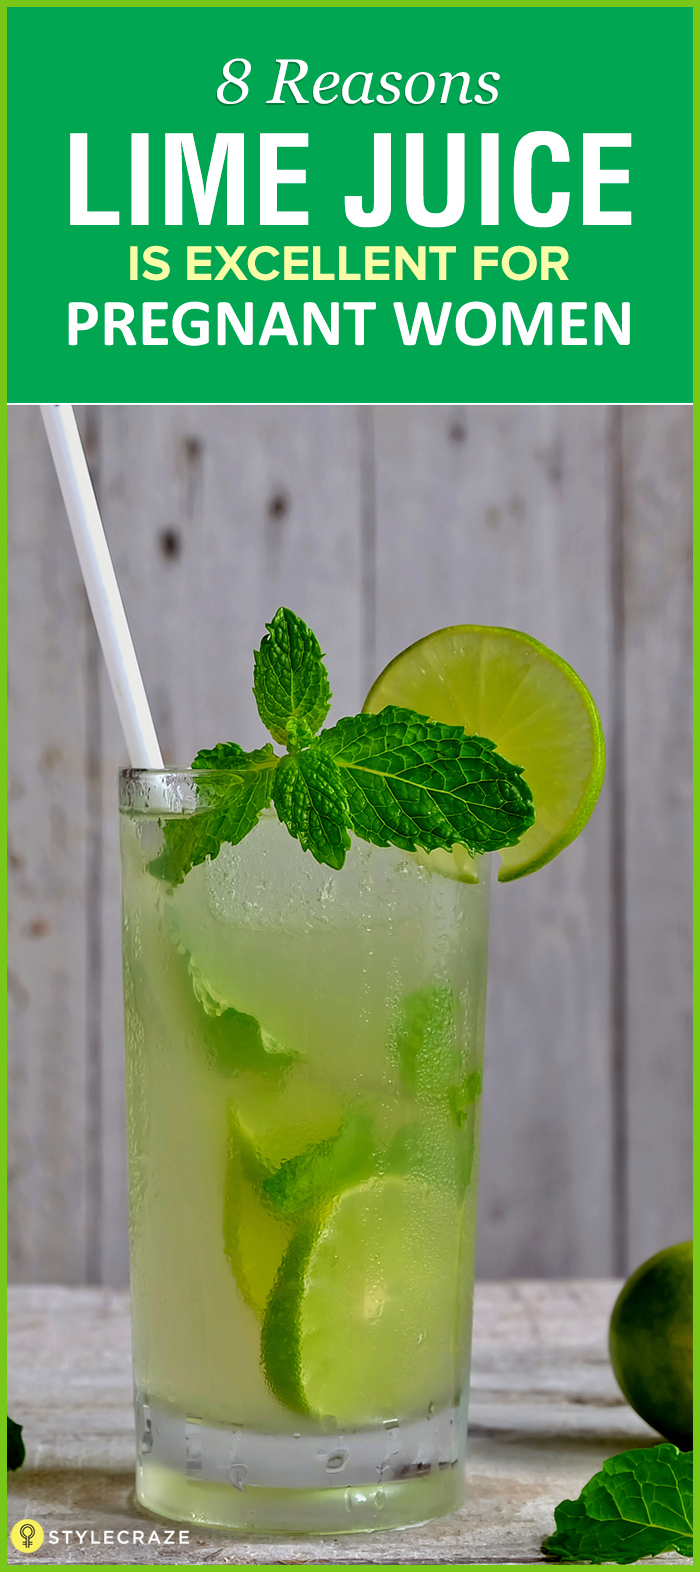 8-Reasons-Lime-Juice-Is-Excellent-For-Pregnant-Women1 (1)